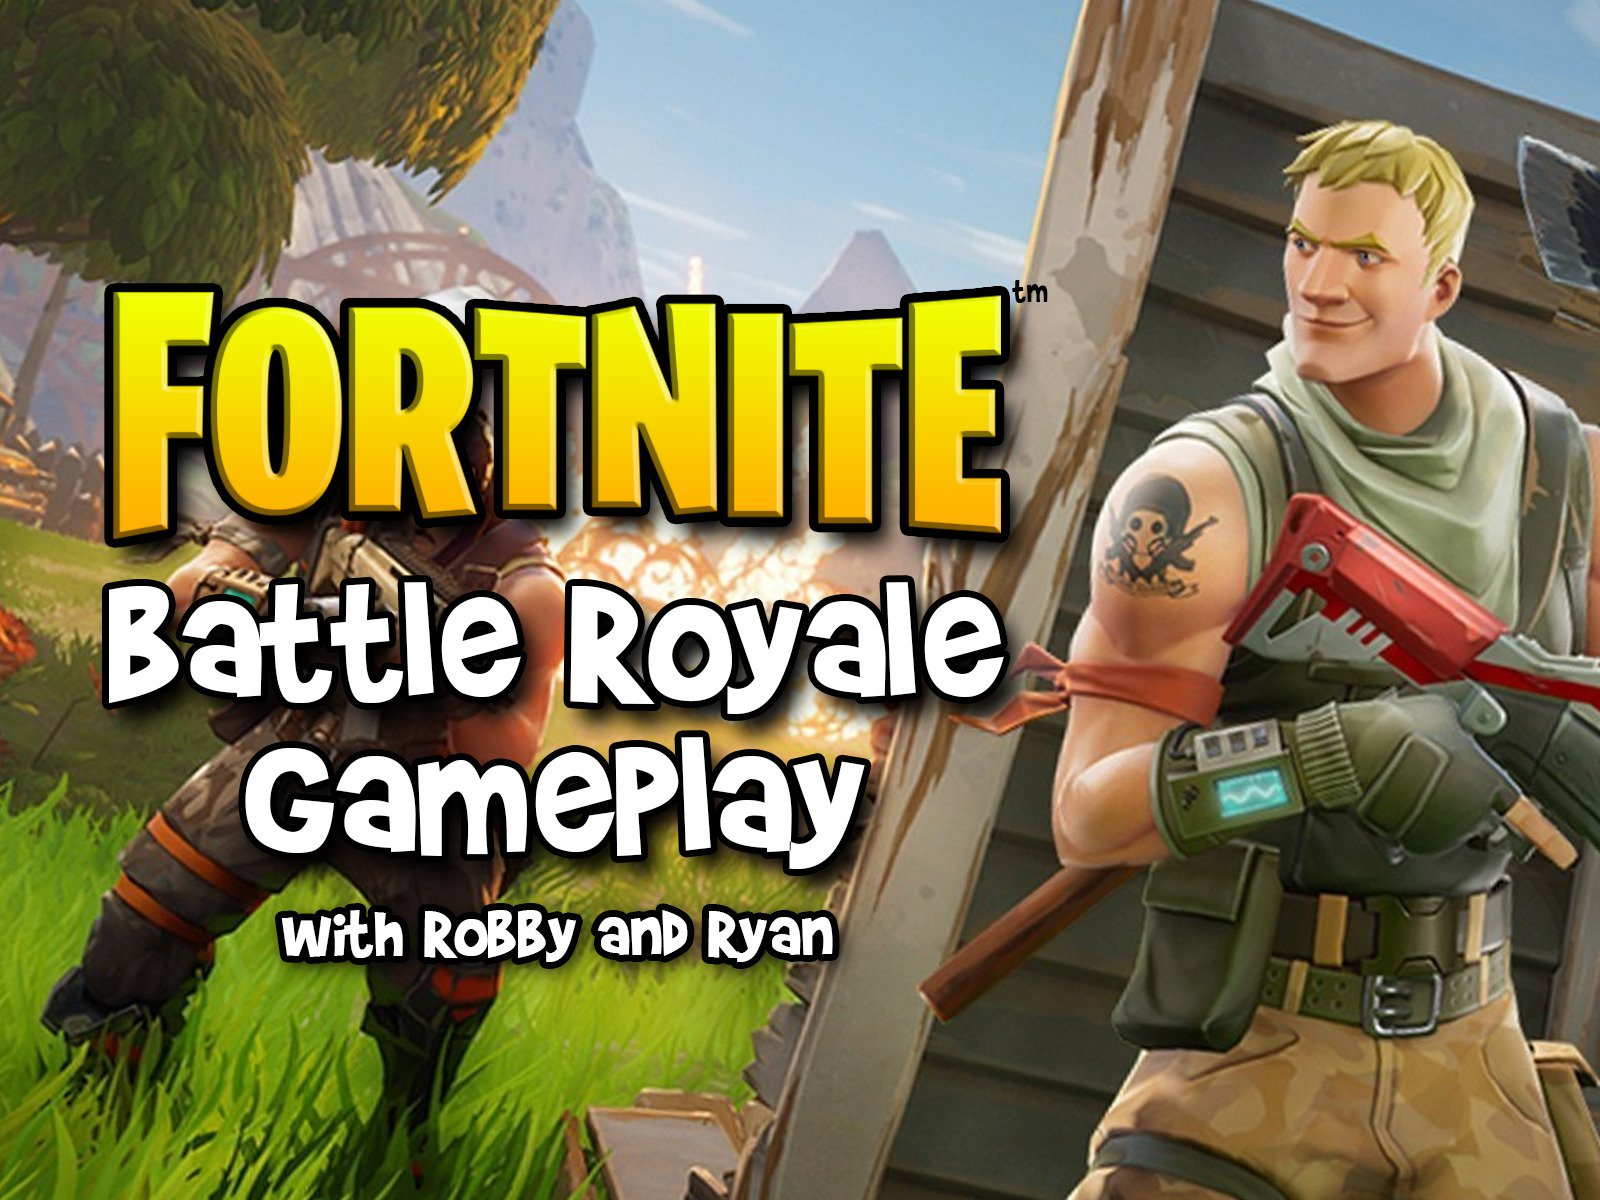 Clip: Fortnite Battle Royale Gameplay with Robby and Ryan - Season 1